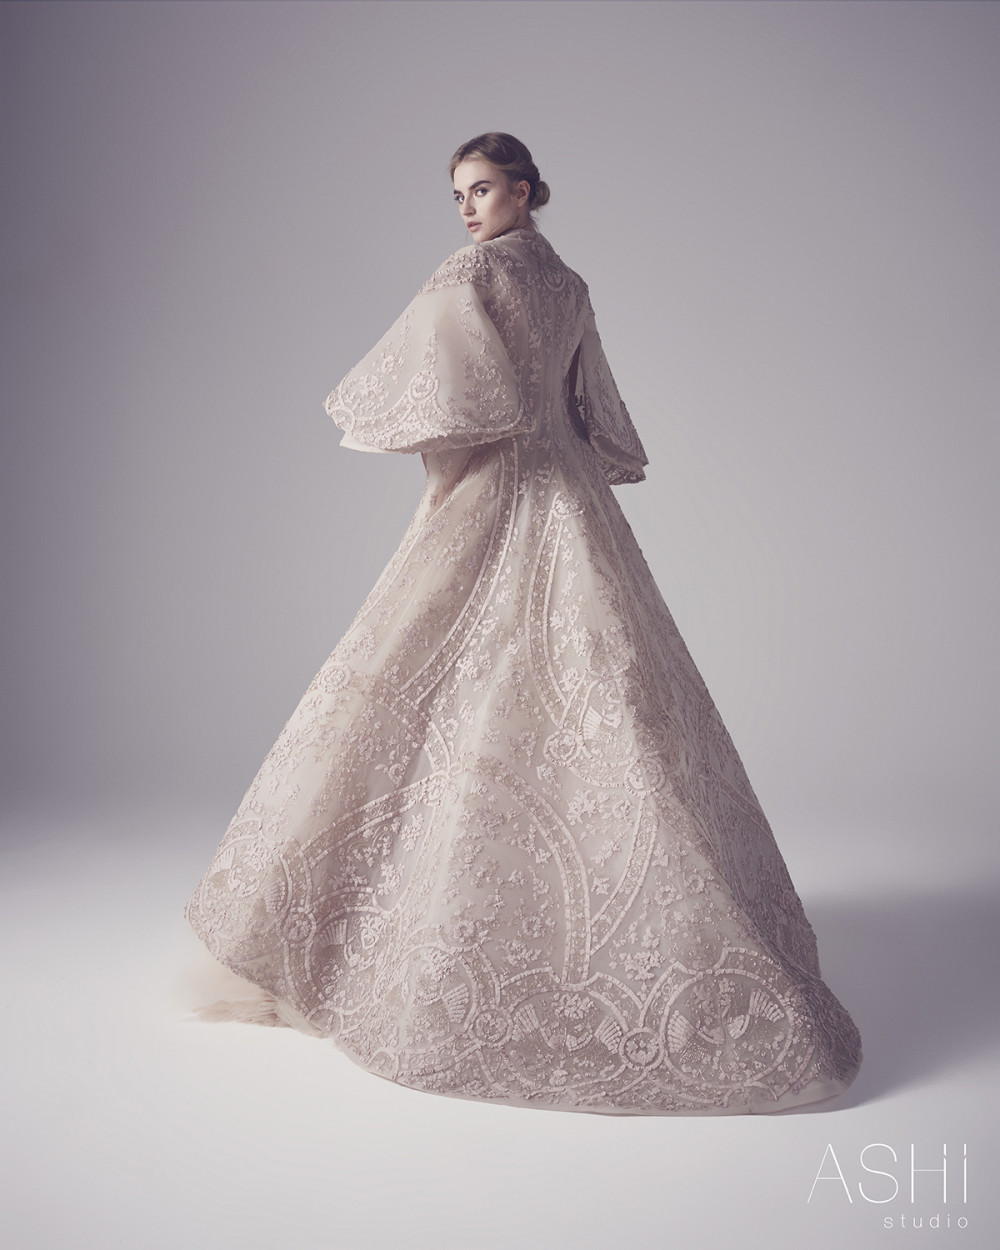 Ashi Studio_Spring Summer 2016 Couture Collection_BellaNaija Weddings_Ashi_14-180_large